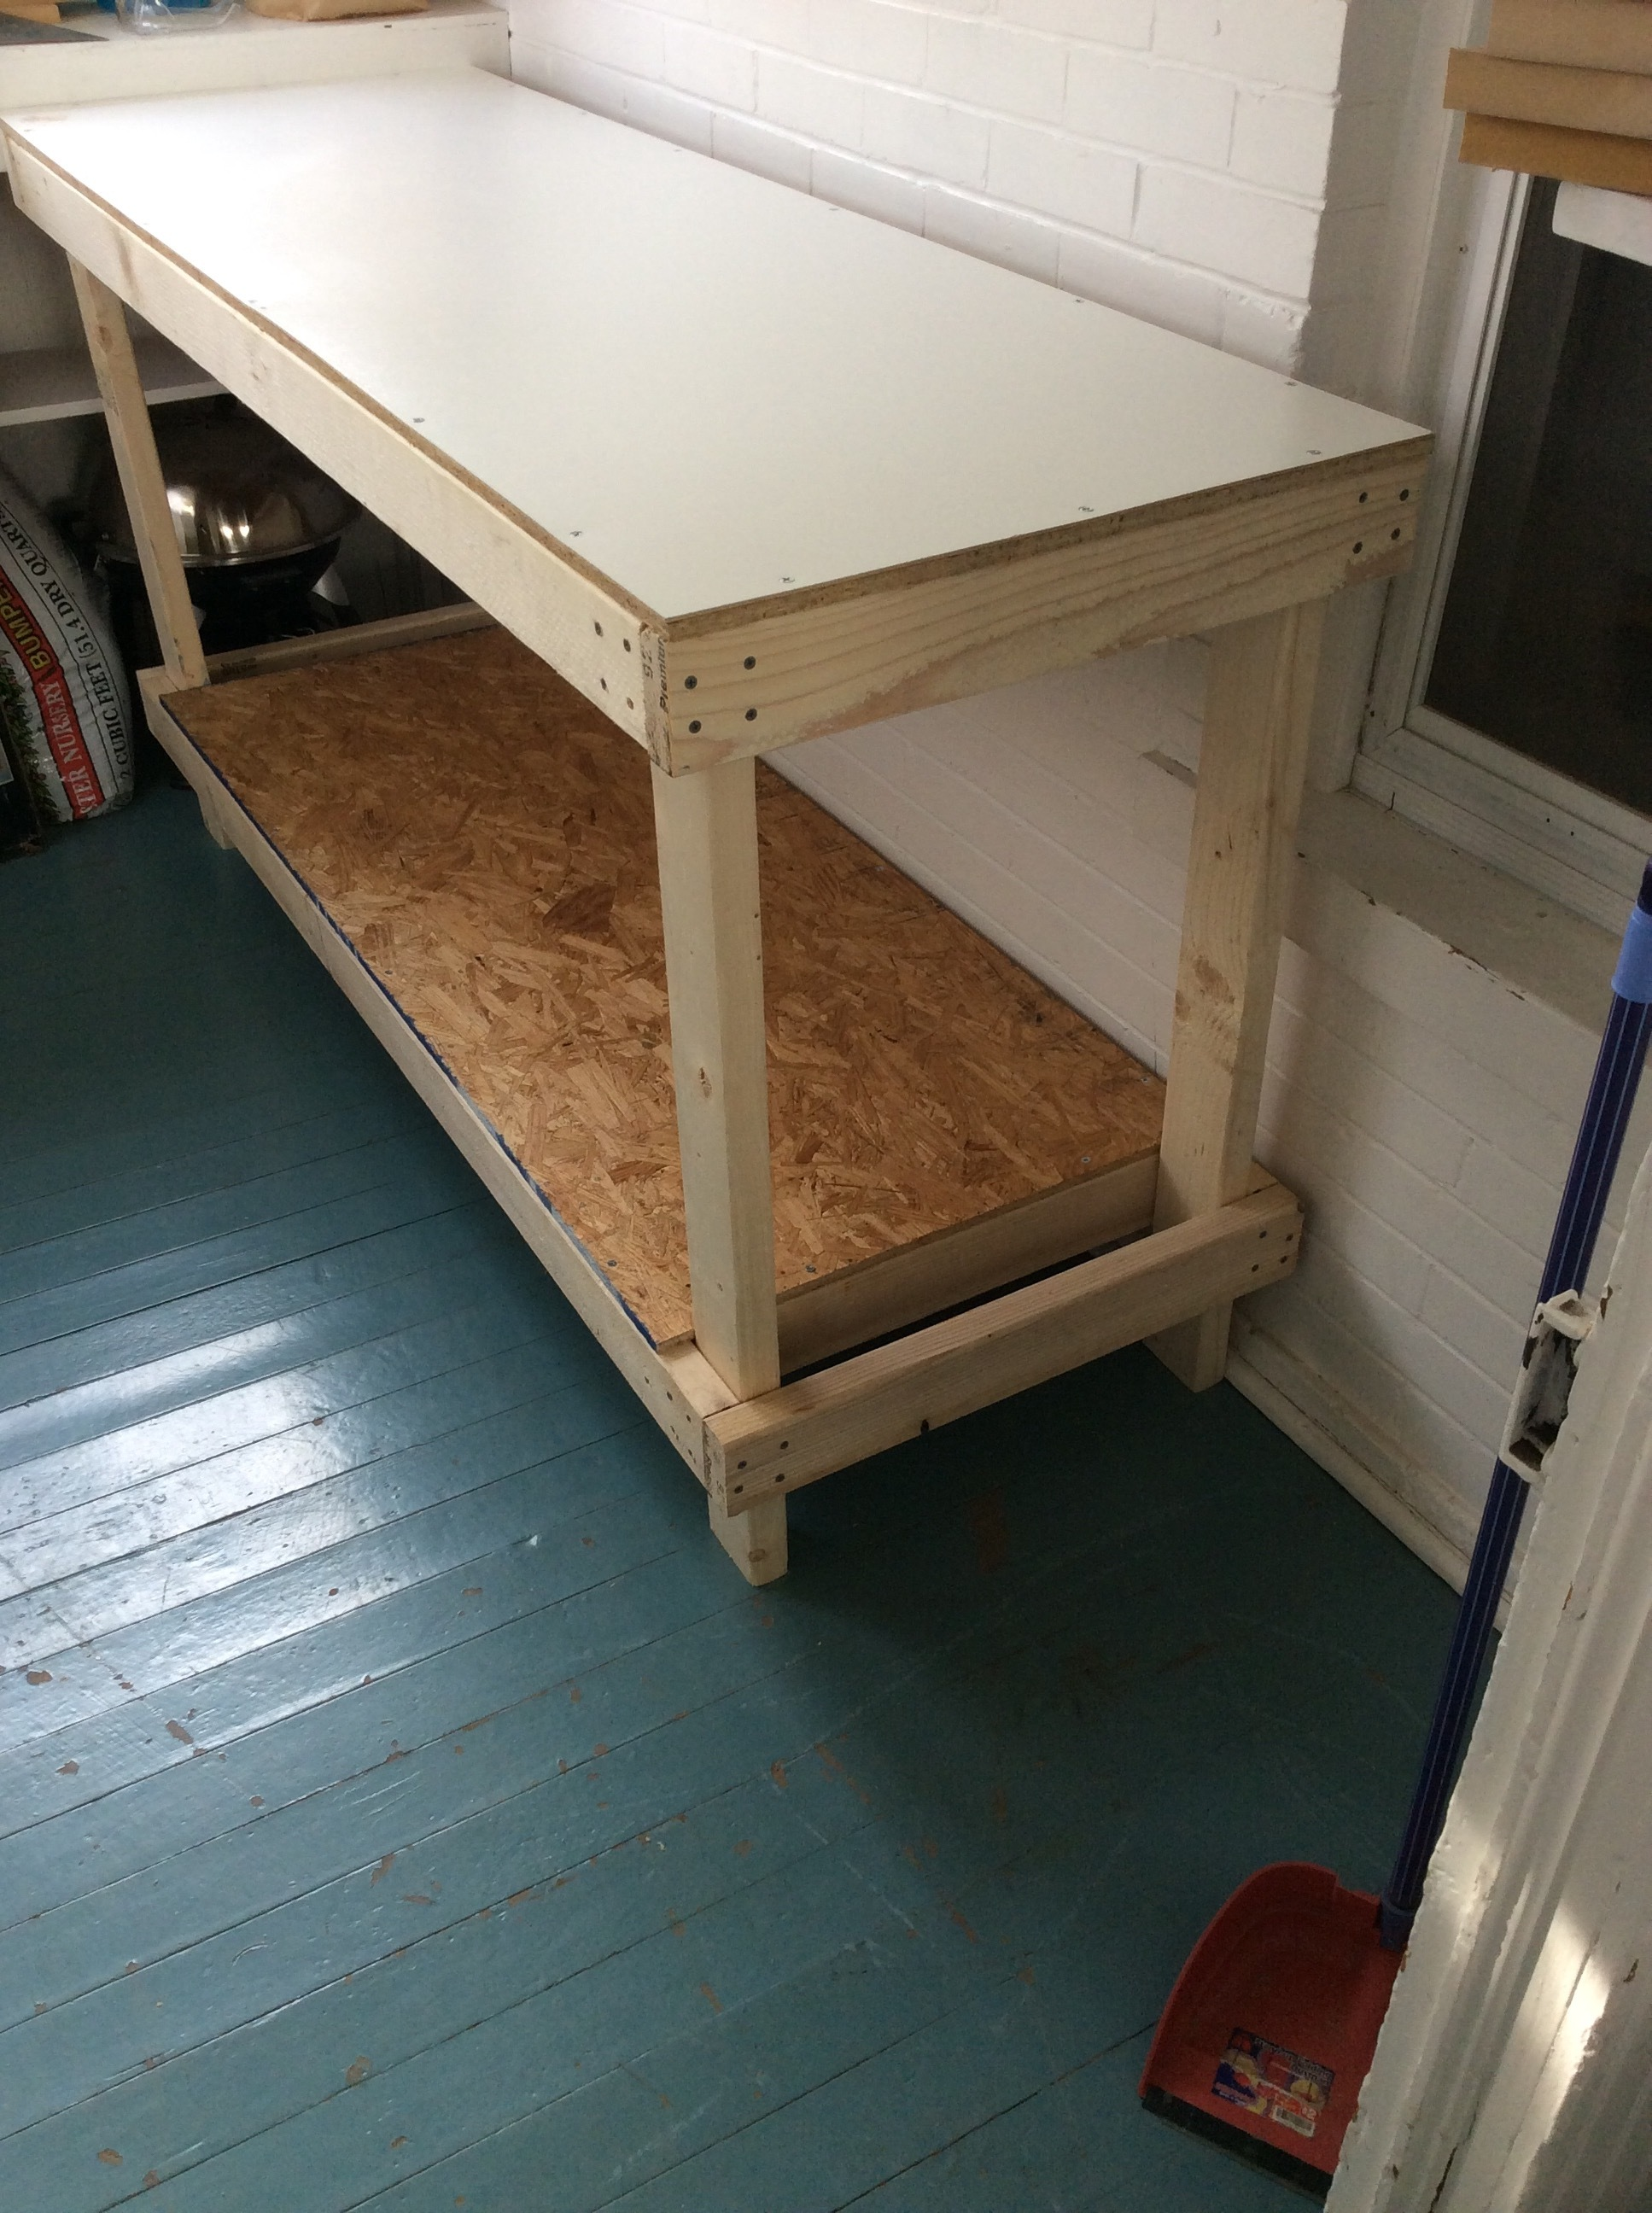 A completed workbench